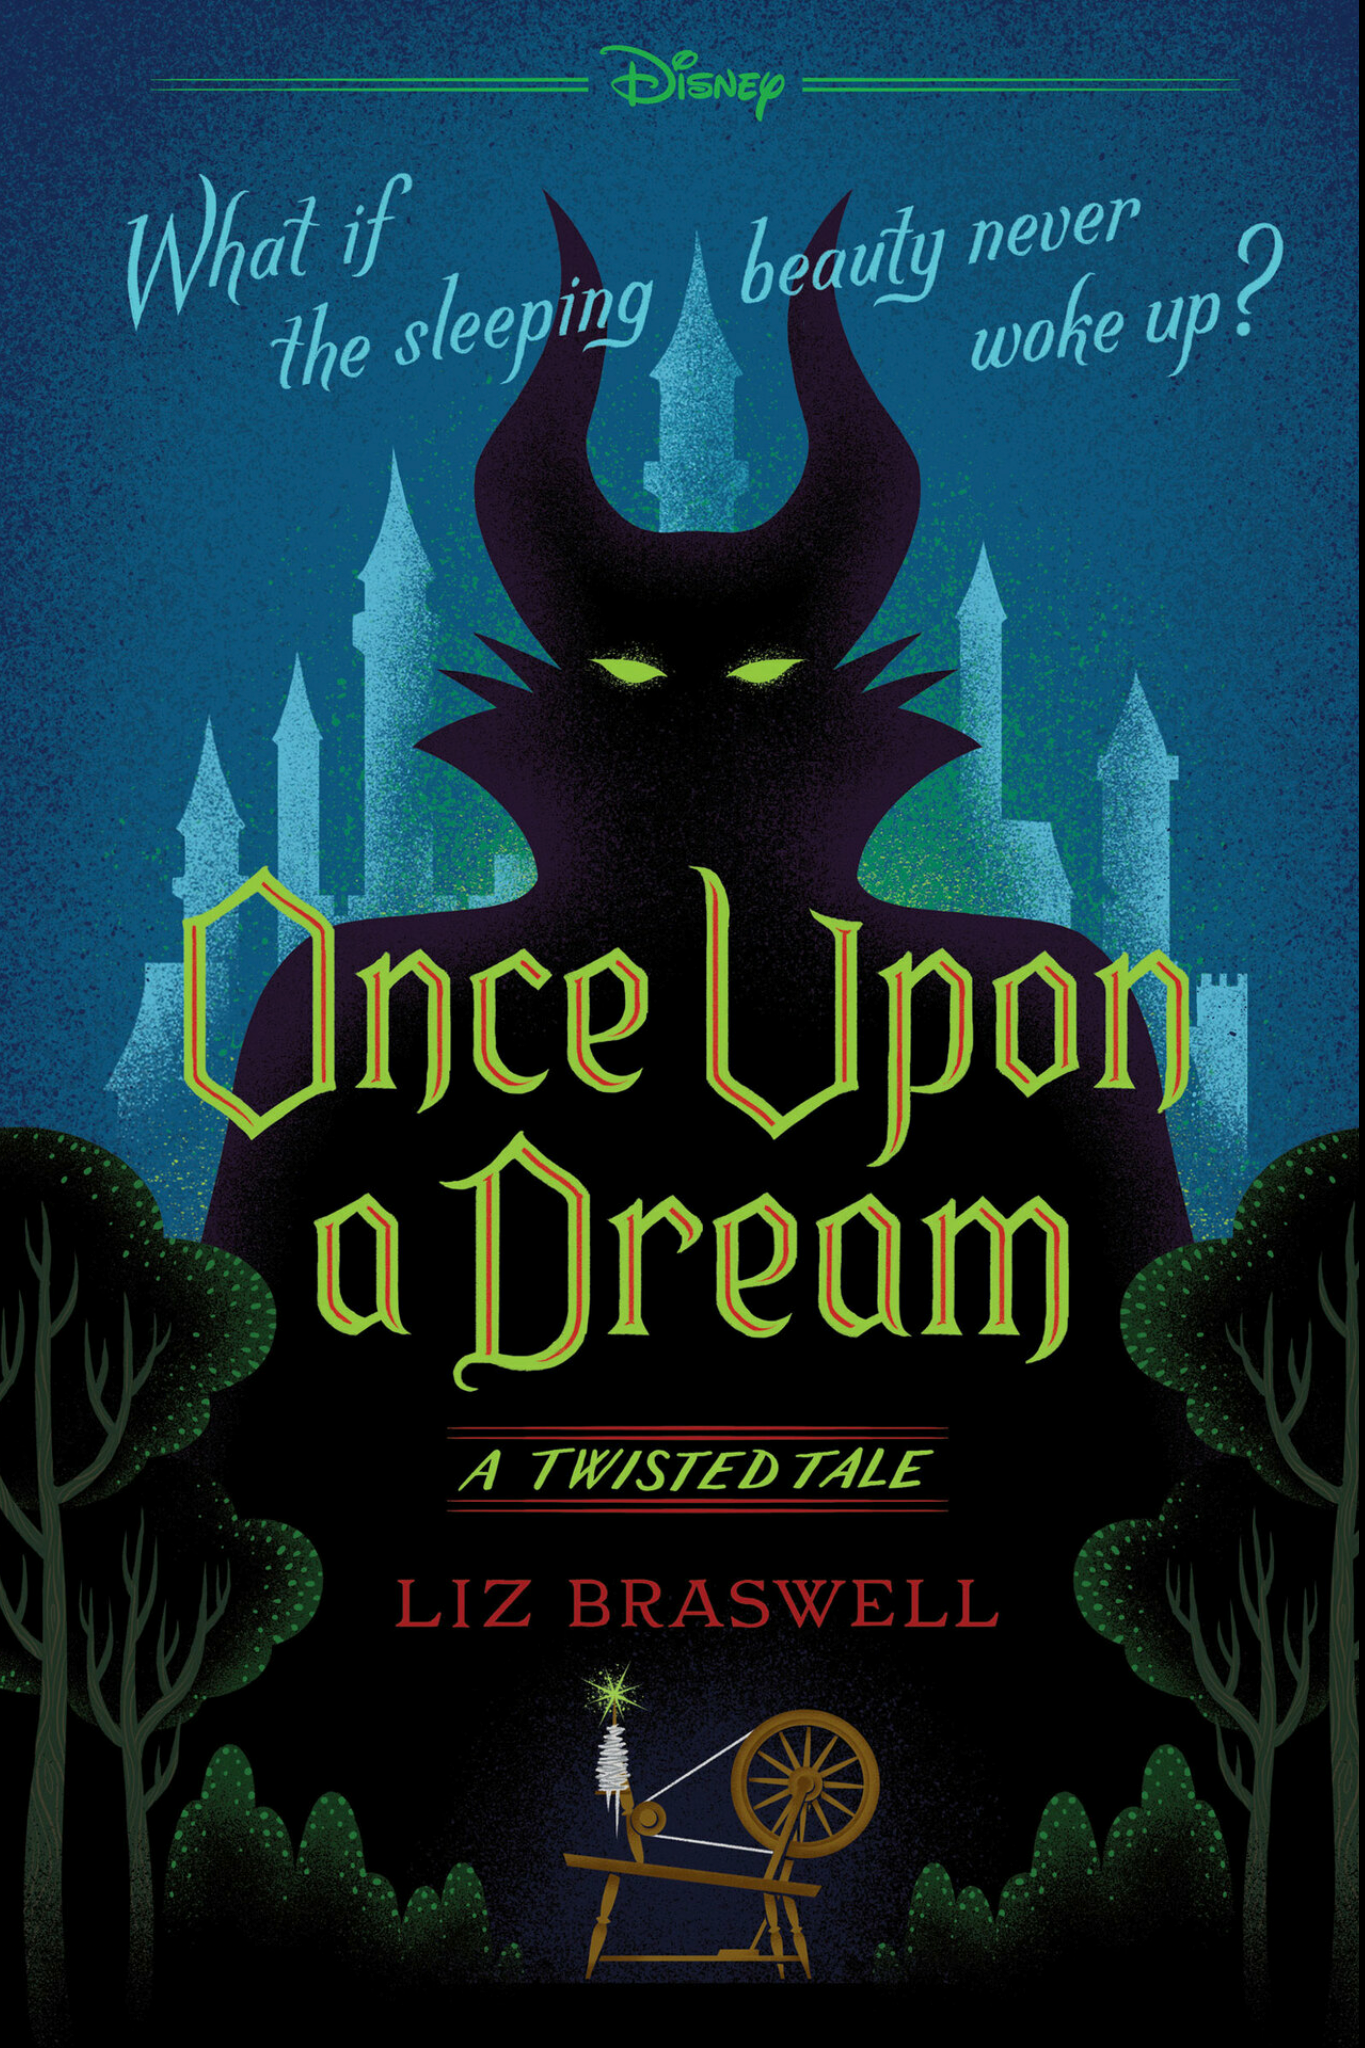 Book Sample Review - Once Upon A Dream (A Twisted Tale) by Liz Braswell